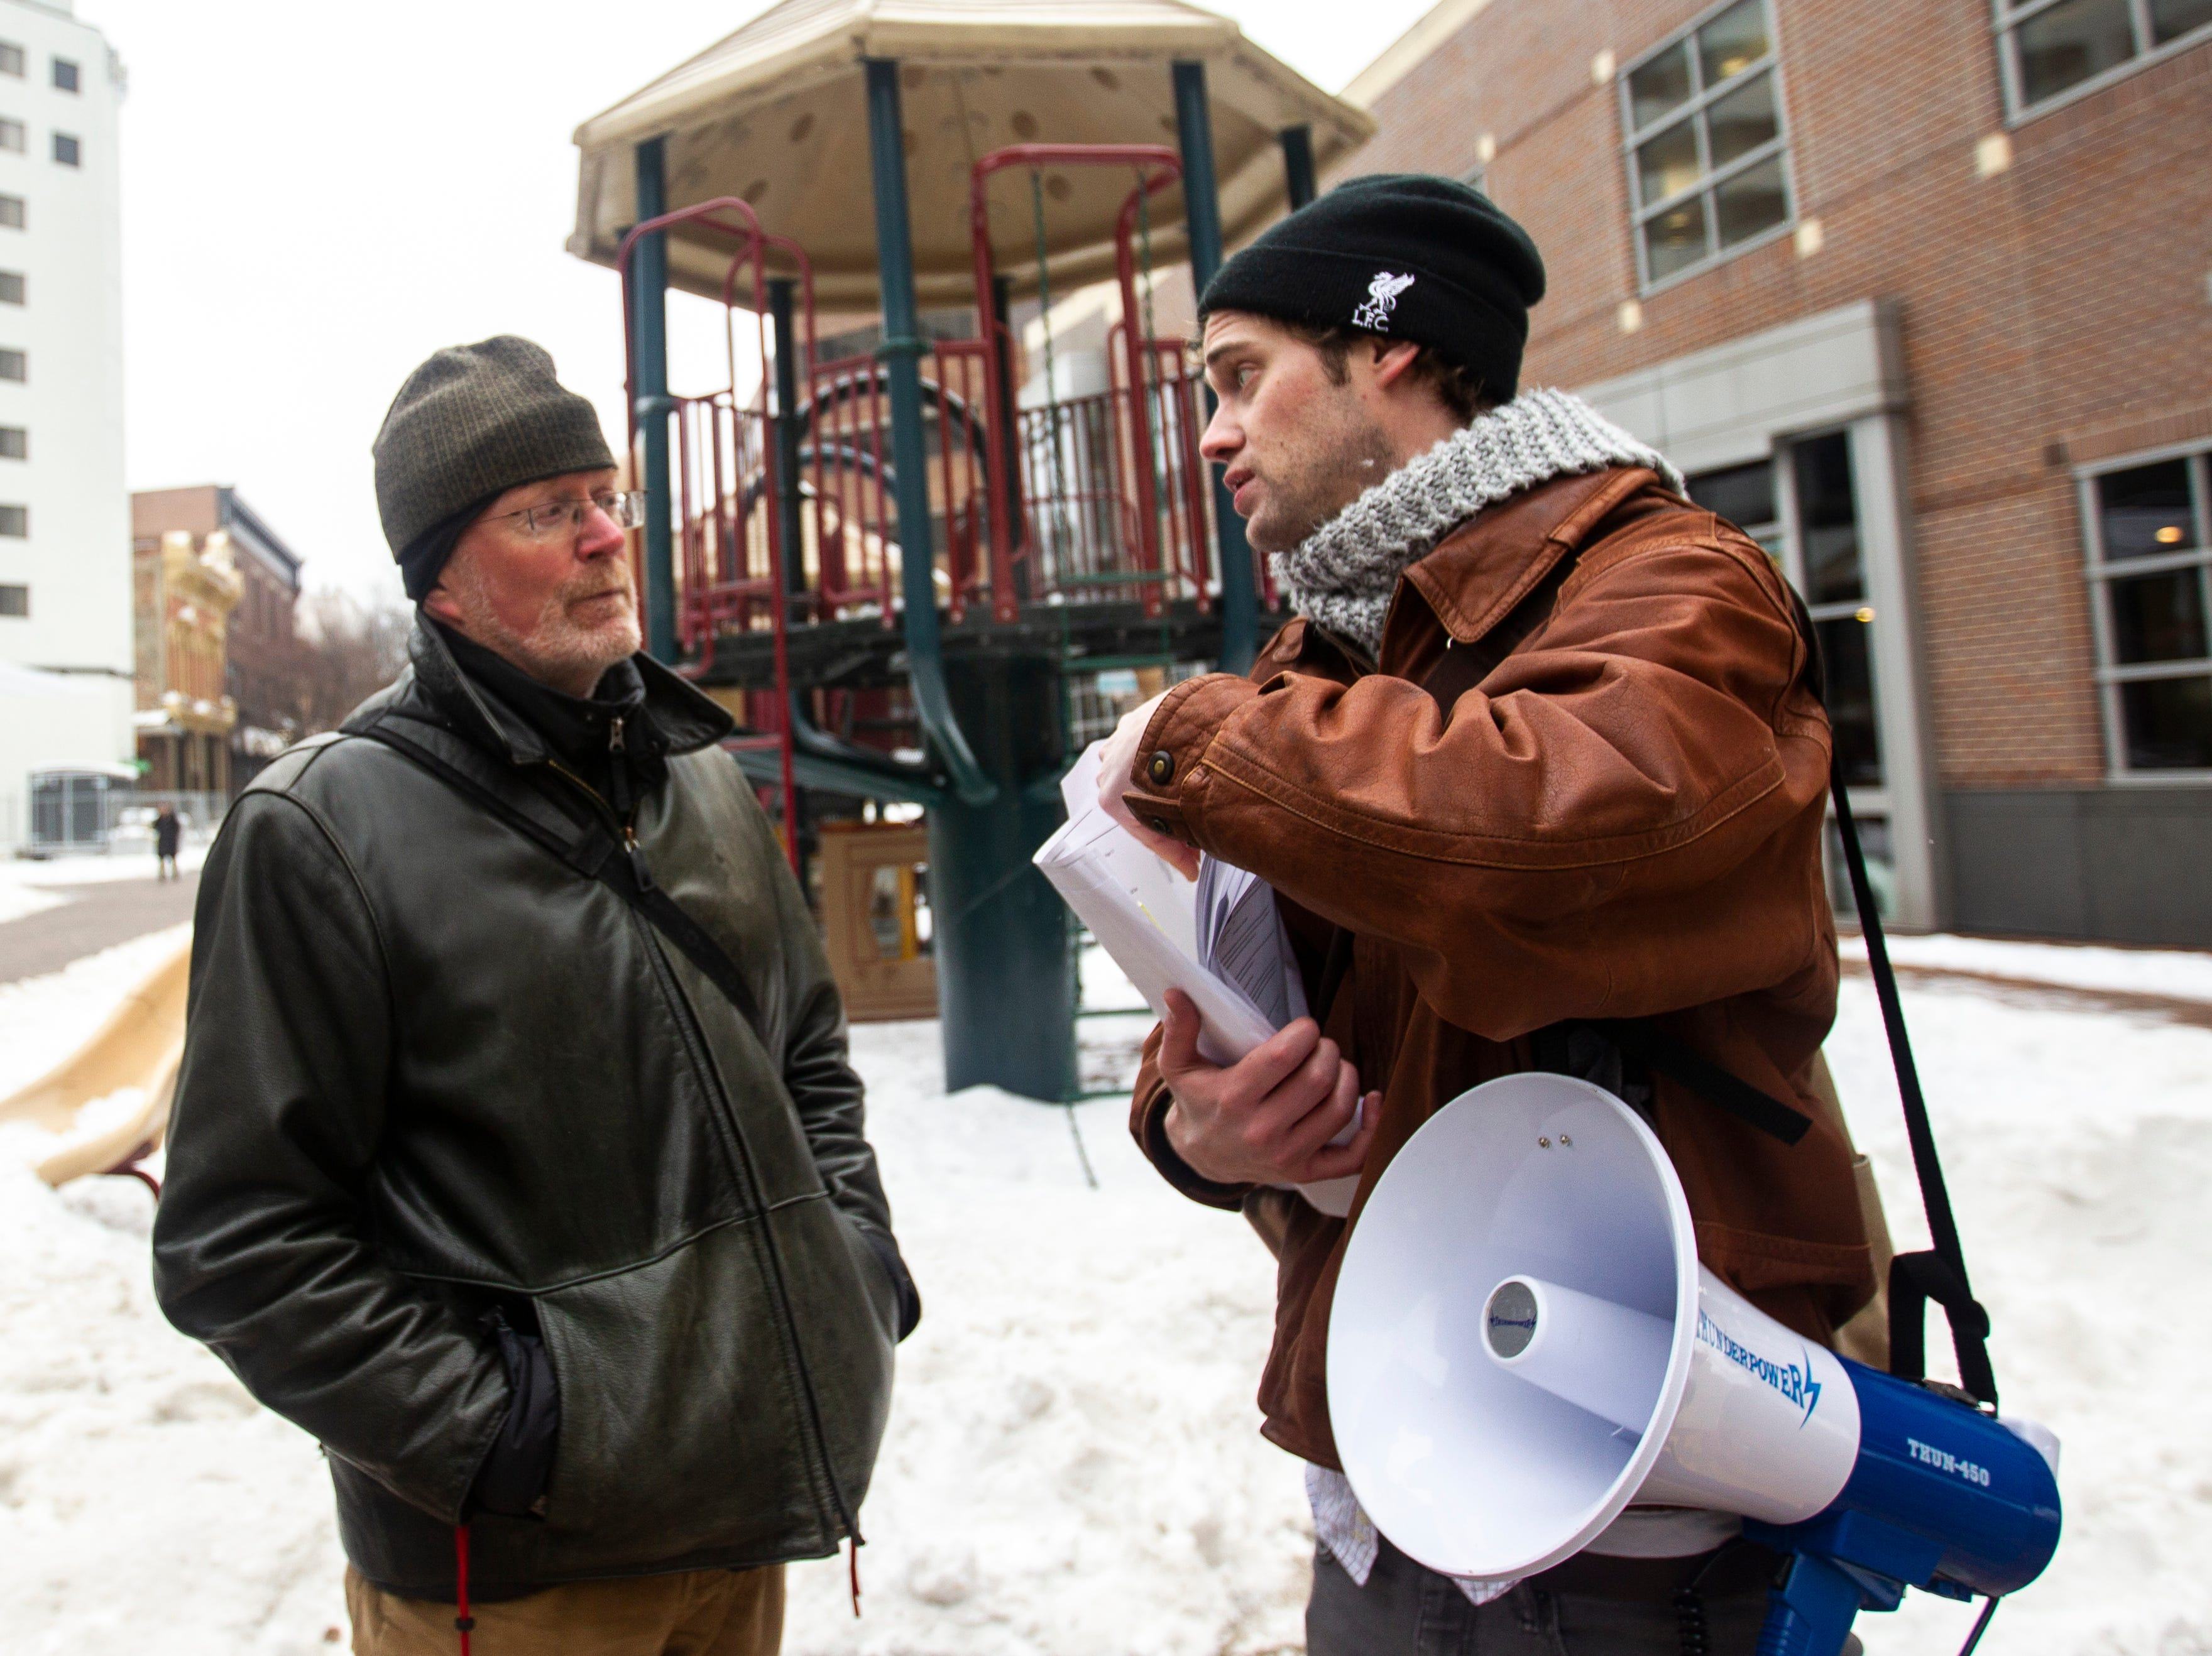 "Iowa City Mayor Jim Throgmorton, left, talks with Mark Petterson, a volunteer at the Catholic Worker House, after the ""Sleep-In to Stop #HostileDesign"" on Monday, Jan. 14, 2019, along the pedestrian mall in downtown Iowa City, Iowa."